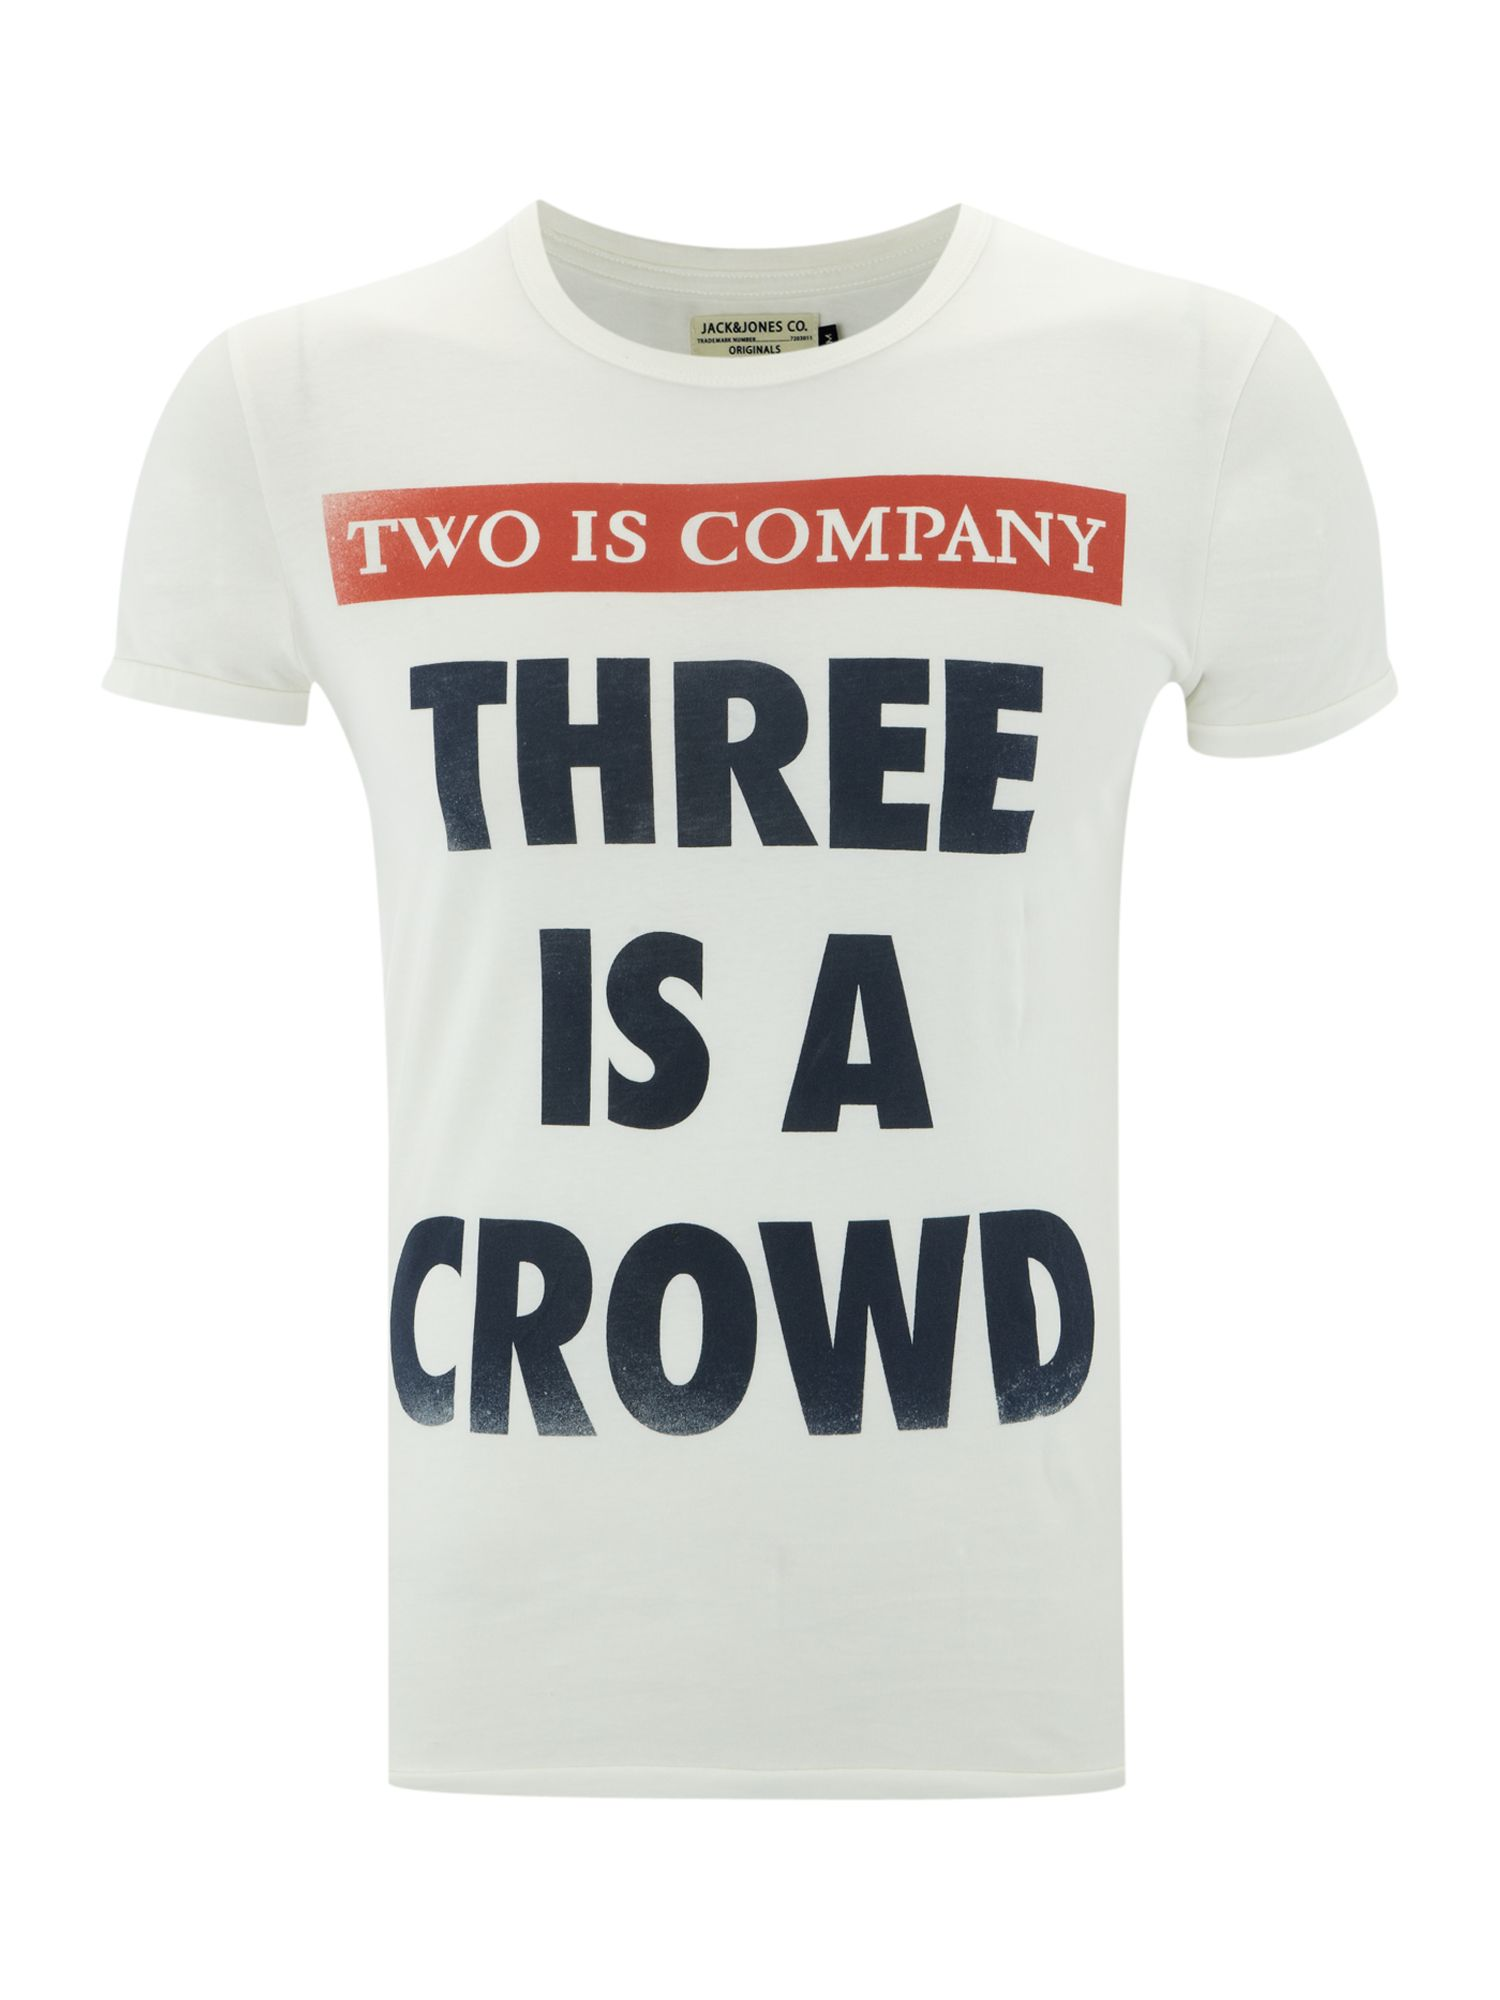 Short-sleeved `3 is a crowd` graphic T-shirt